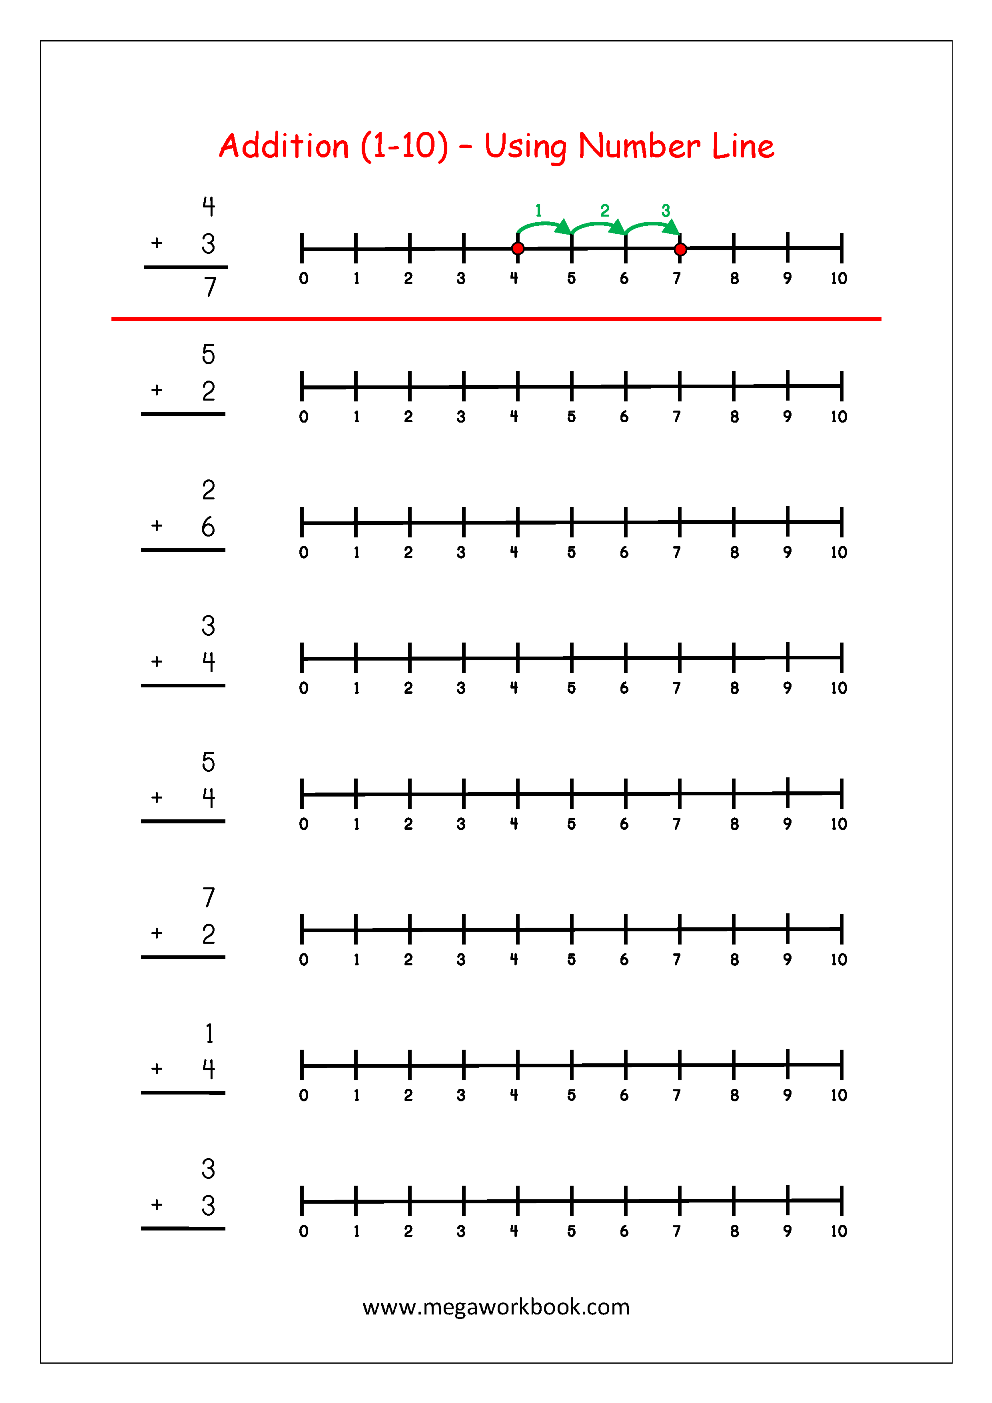 Worksheet Printable Number Line Integers Wosenly Free Worksheet – Adding and Subtracting Integers Worksheets Grade 7